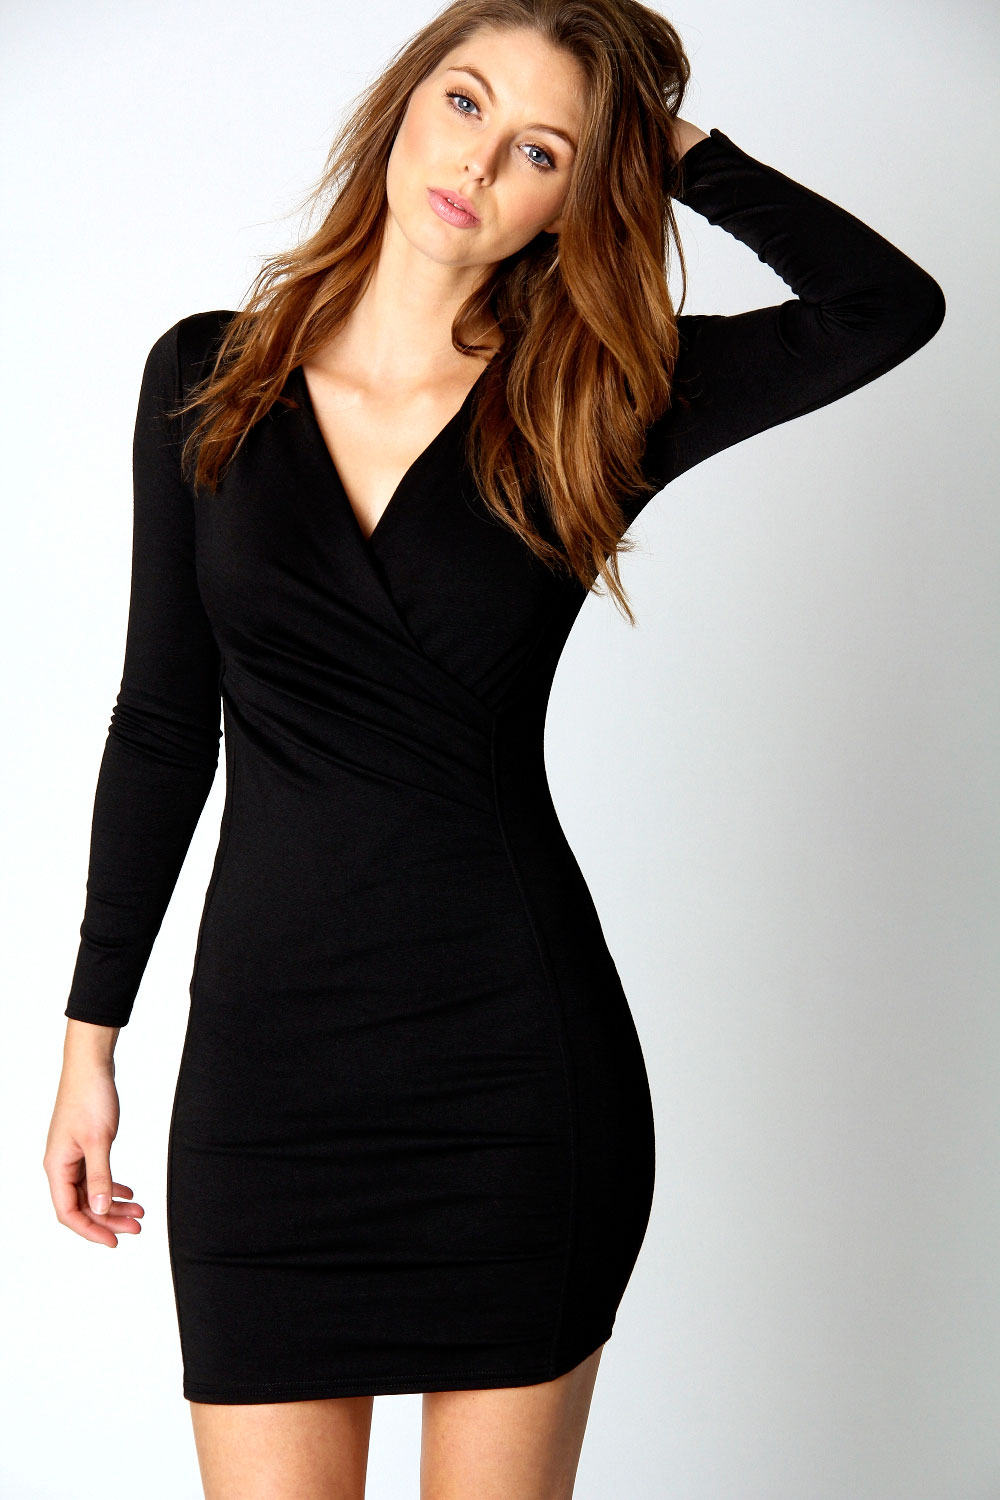 Boohoo Megan V-Neck Long Sleeve Short Wrap Dress in Black | eBay